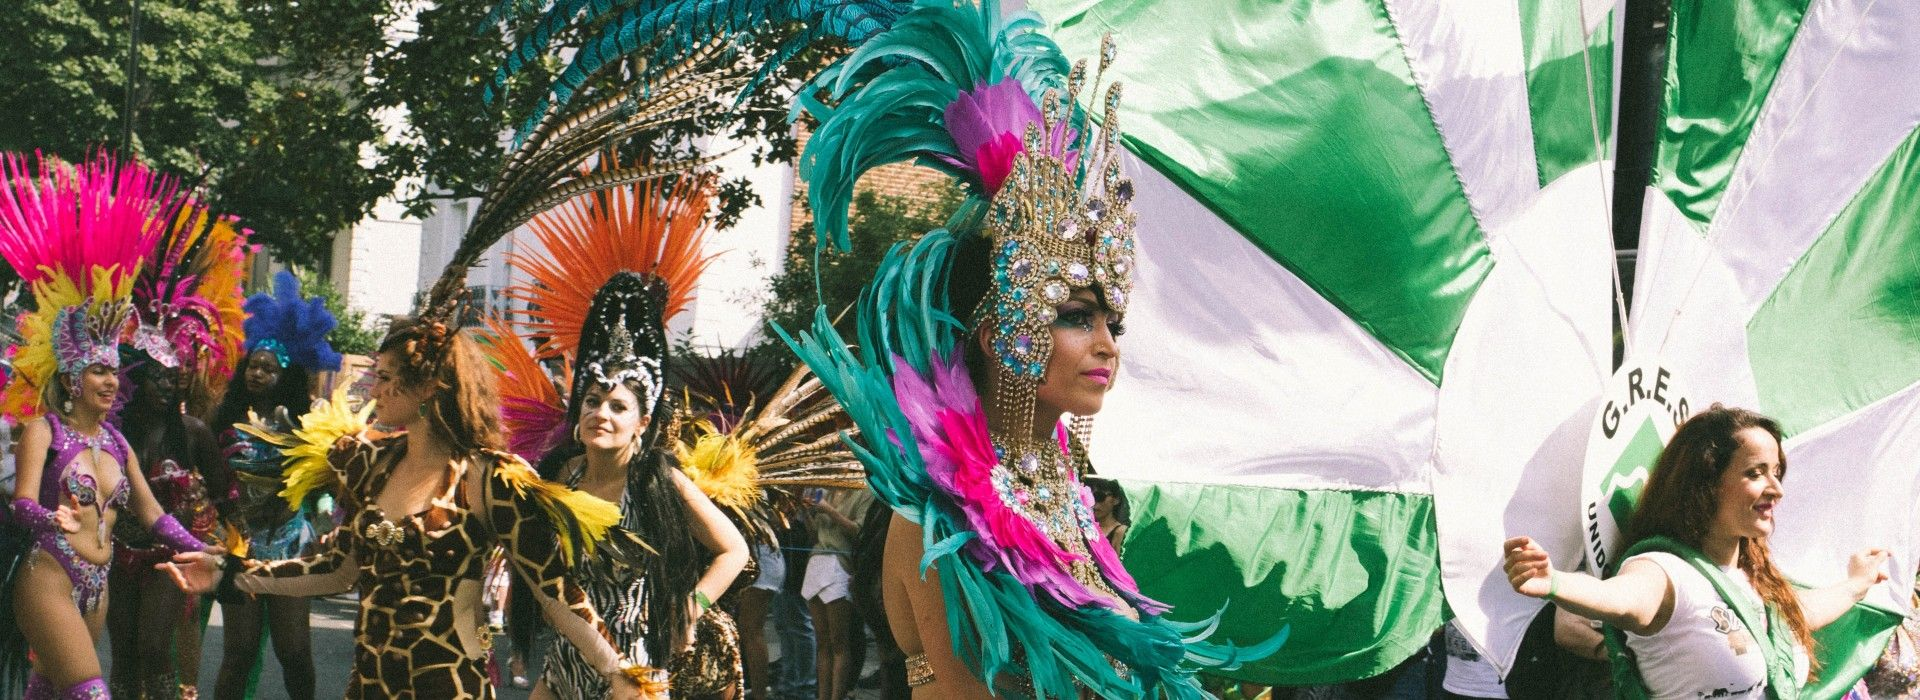 Rio Carnival Tours and Trips